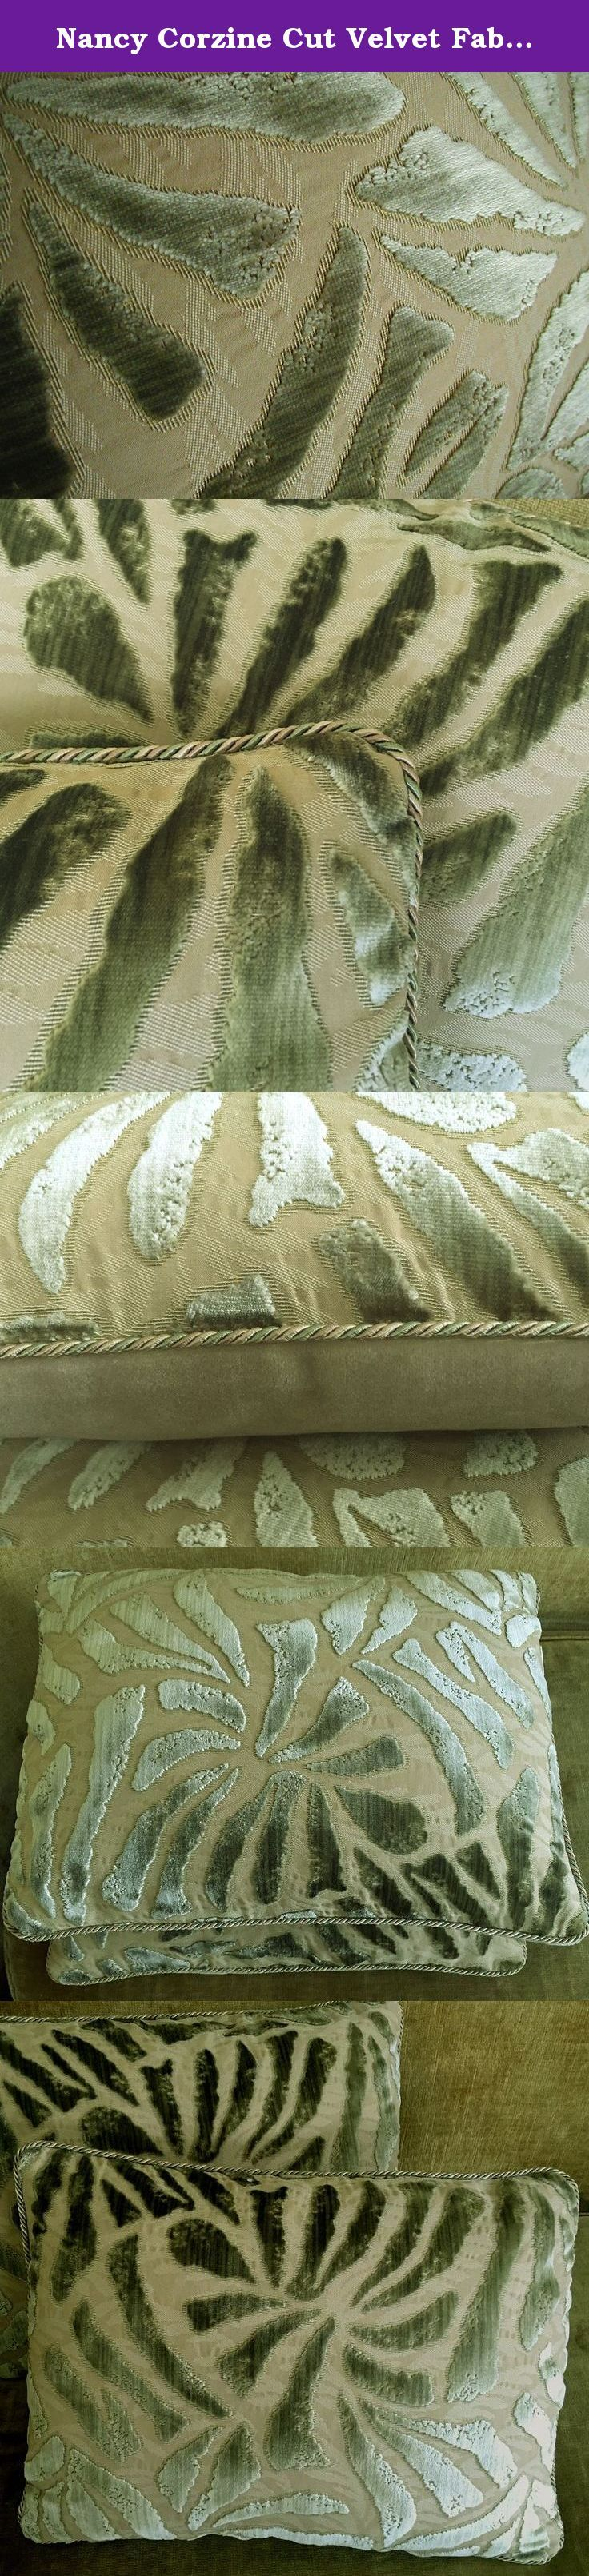 """Nancy Corzine Cut Velvet Fabric Custom Designer Throw Pillows Cavallo New Set of 2 Stone Green Beige. Spectacular cut velvet by Nancy Corzine made into a pair of toss cushions, each measuring a versatile 13""""h x 17""""w, a nice, smaller size that's just right for chairs, benches, or to stack in front of larger cushions. The listed price is for one pair of pillows, with repeats slightly different from one another. Pale silvery sage/olive green velvet, subtly striated, in a shade so quiet it…"""